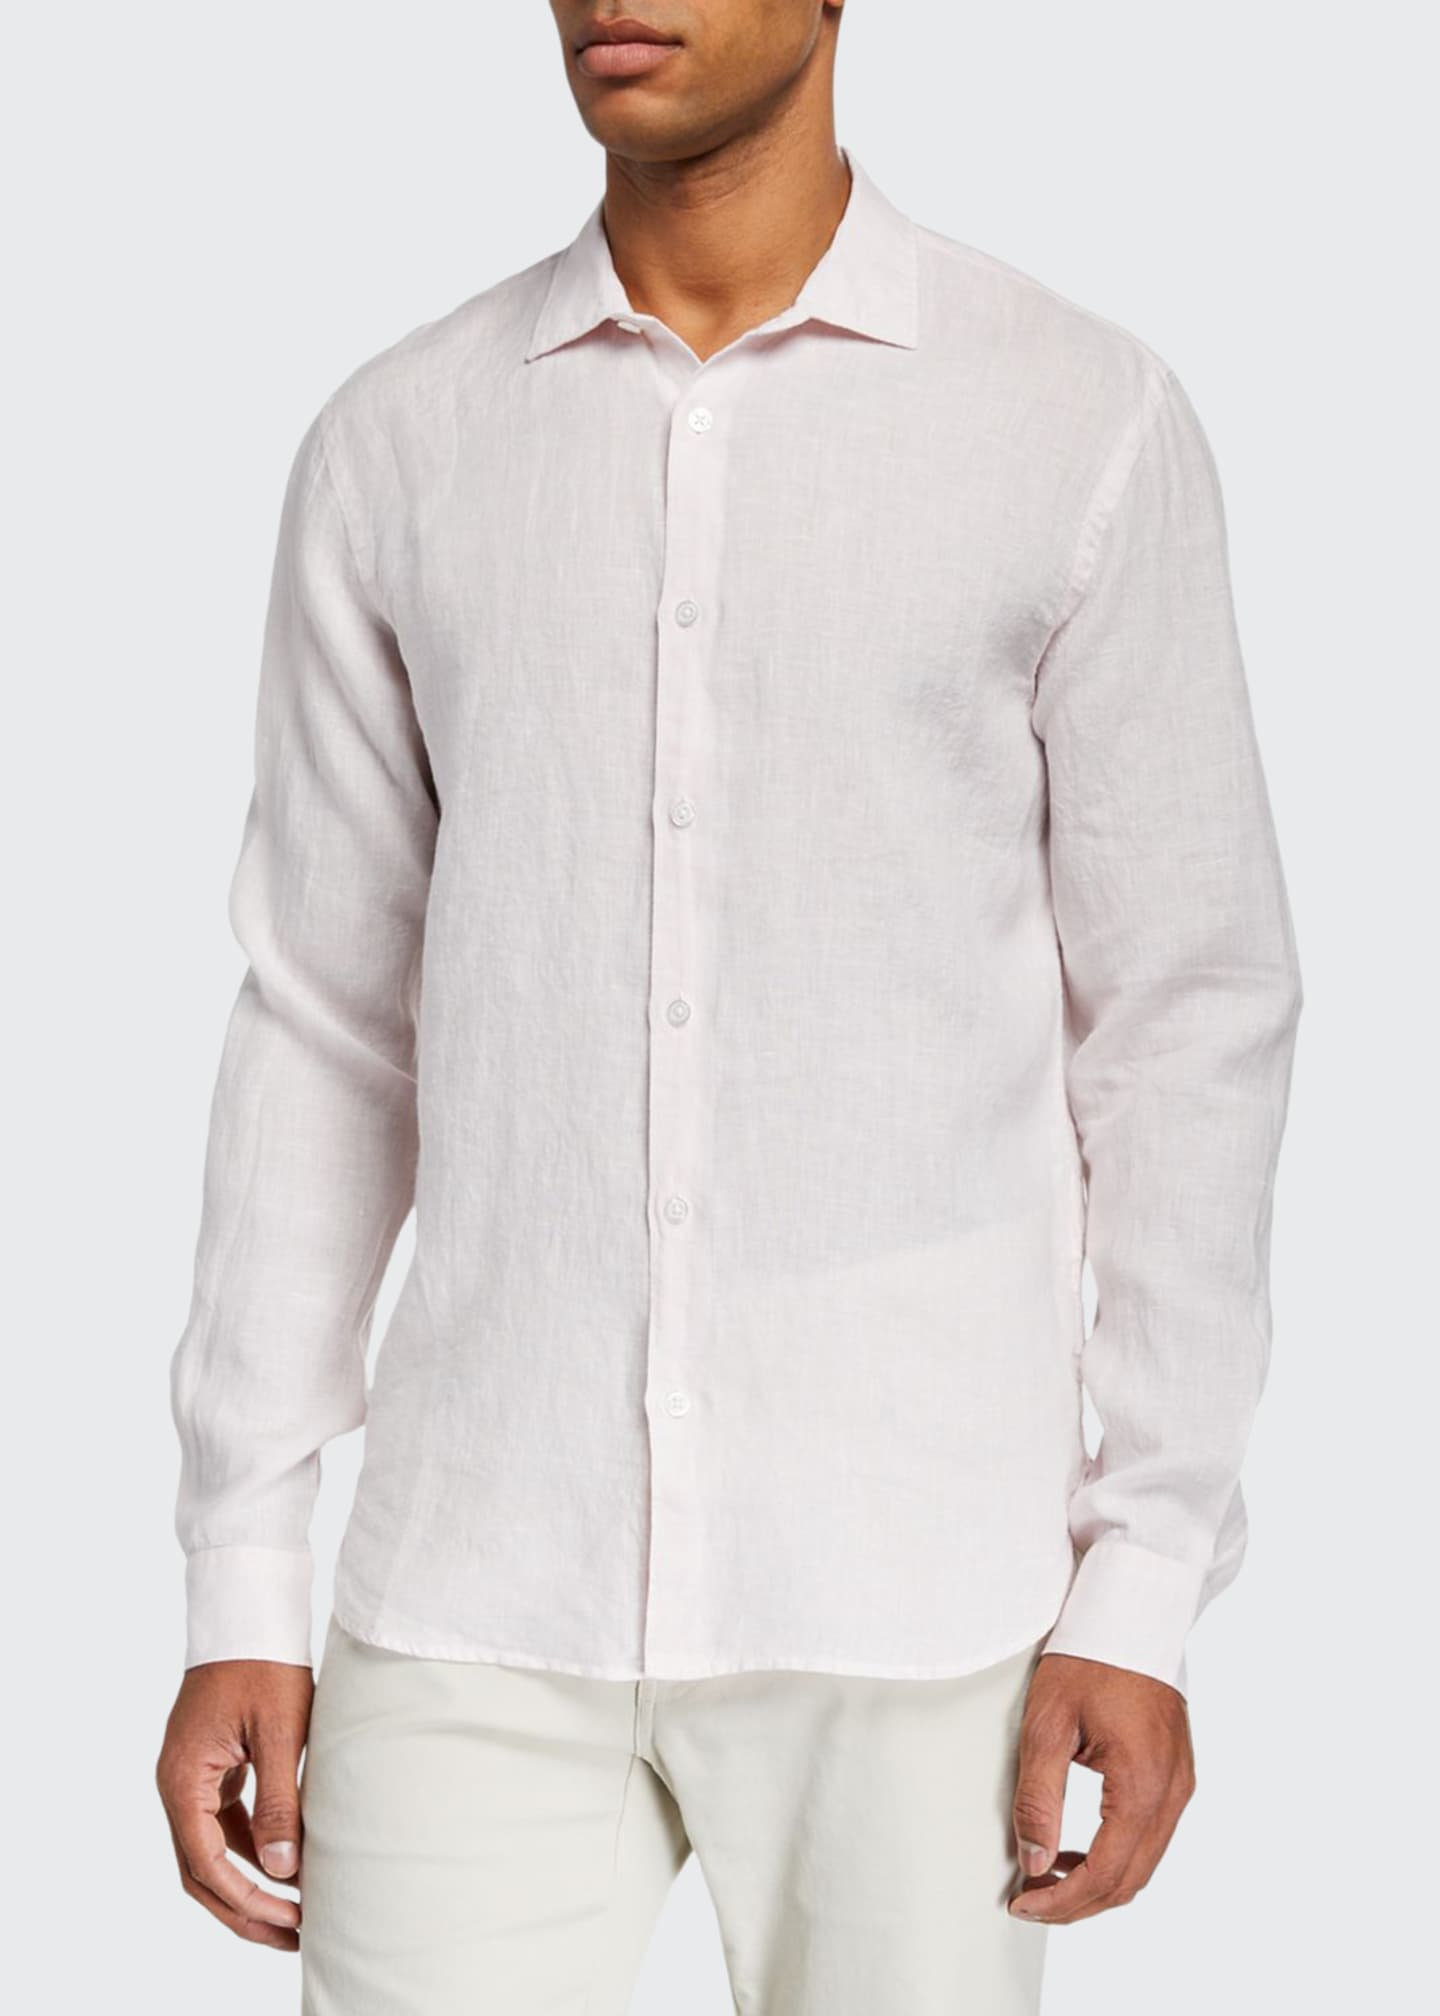 Orlebar Brown Men's Giles Linen Sport Shirt